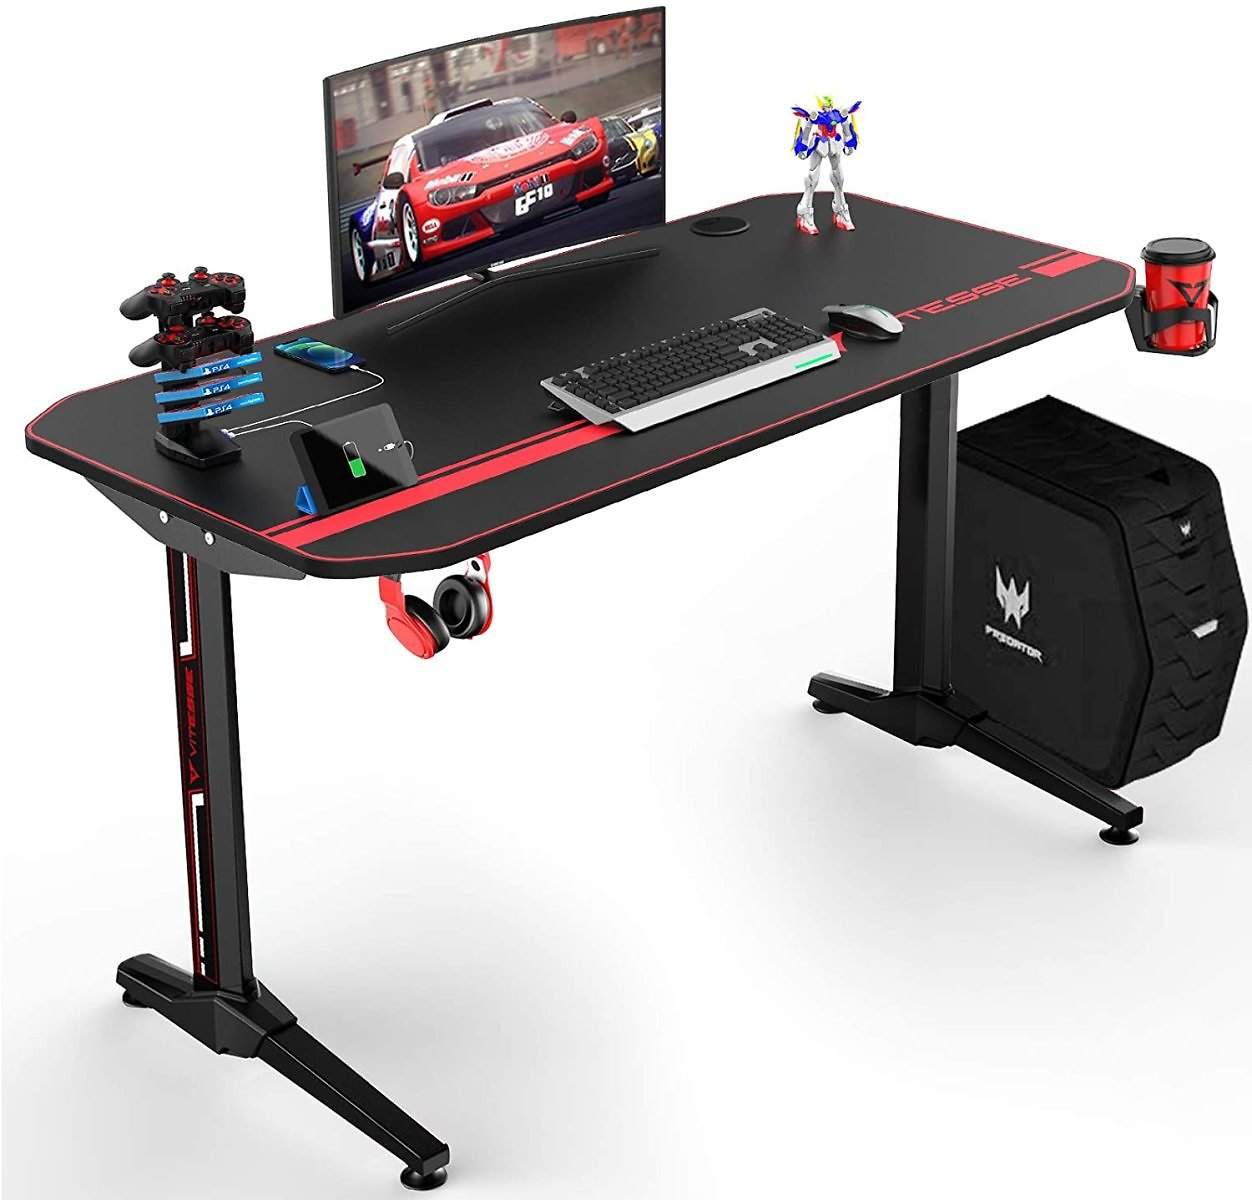 VIT 44 Inch Ergonomic Small Gaming Desk, T-Shaped Office PC Computer Desk with Full Desk Mouse Pad, Gamer Tables Pro with USB Gaming Handle Rack, Stand Cup Holder&Headphone Hook (44 Inch, Black)